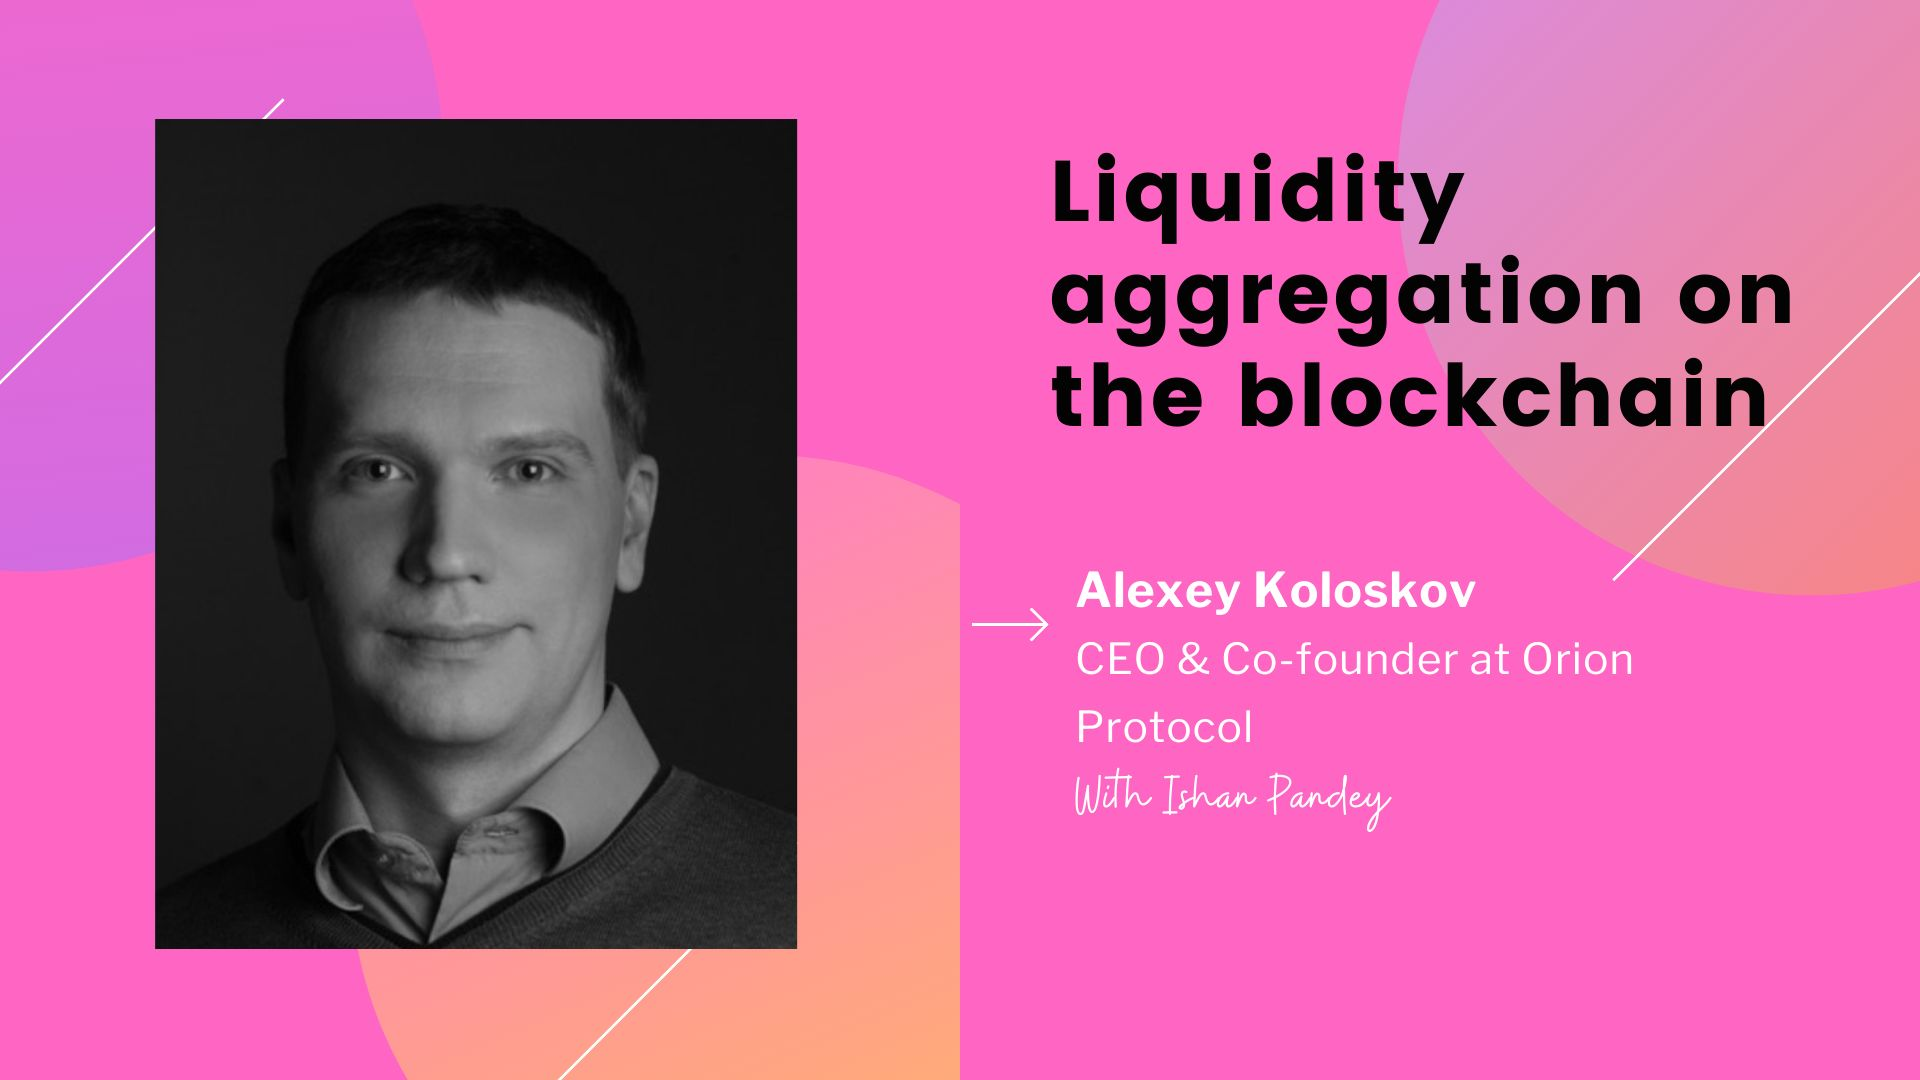 /liquidity-aggregation-and-farming-on-blockchain-with-alexey-koloskov-lxp34z7 feature image